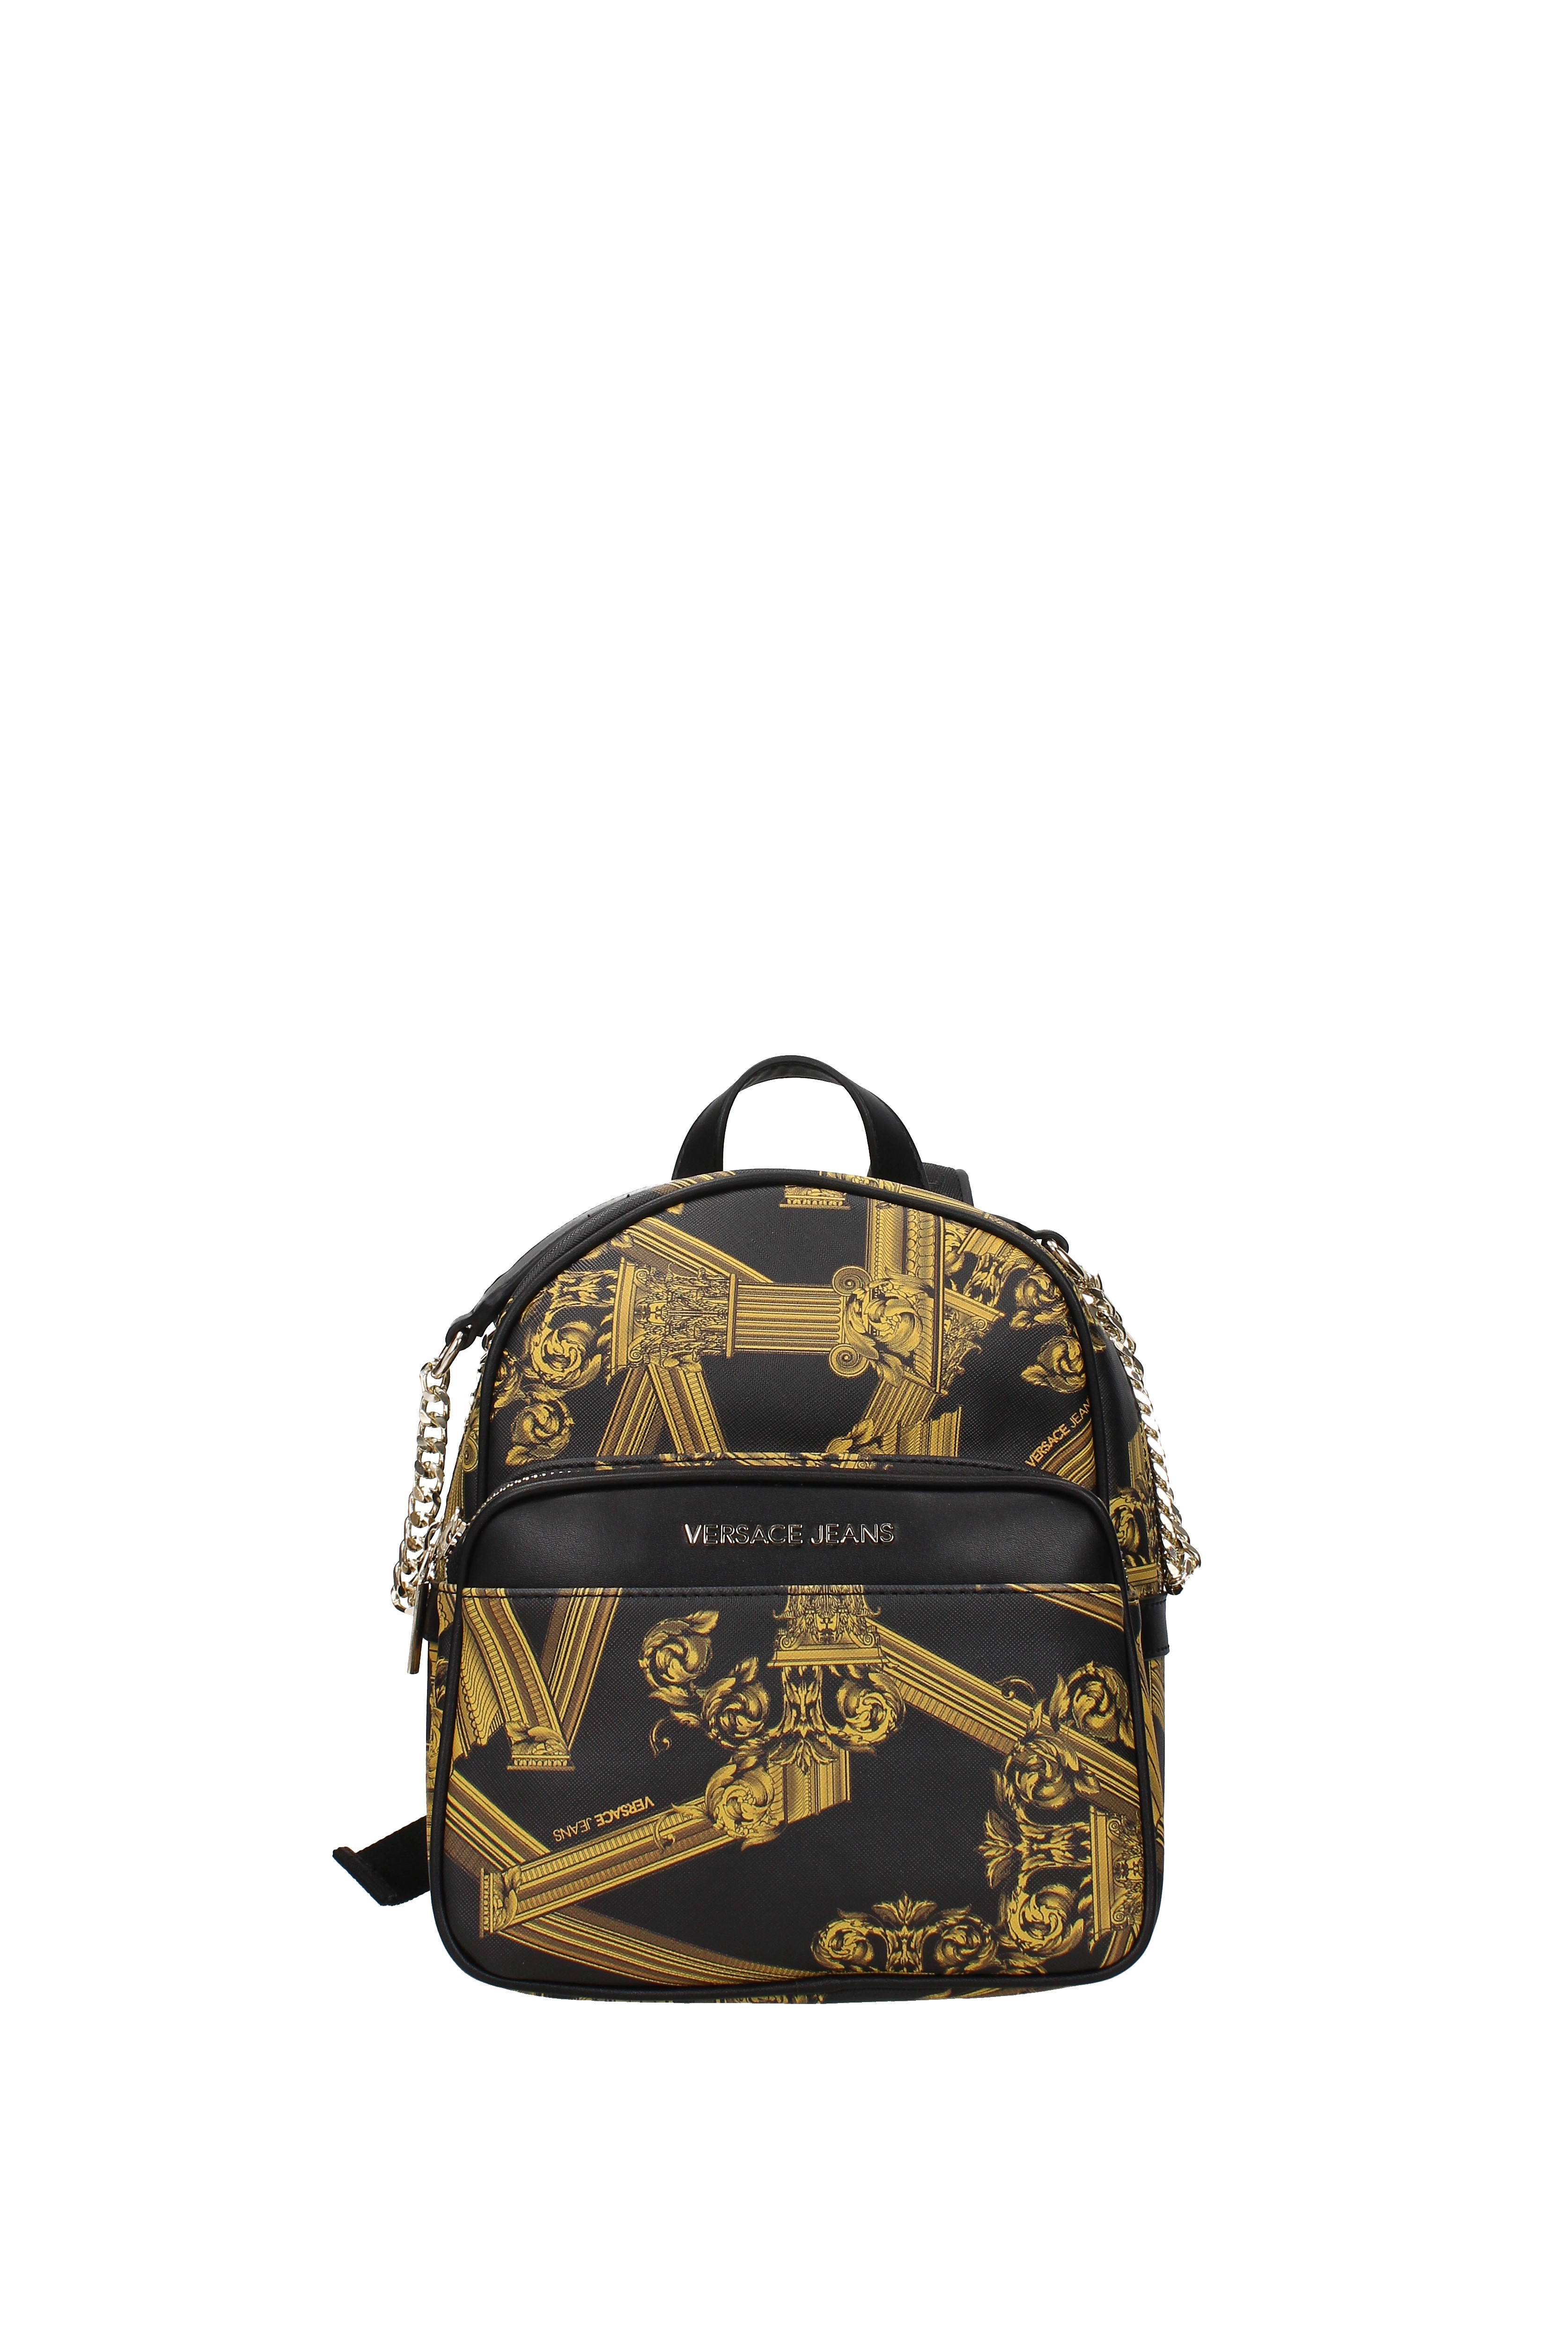 Backpacks and bumbags Versace Versus Women - Polyester (E1VTBBK571101) 1 of  3Only 5 available ... 1ad9be5d779ac